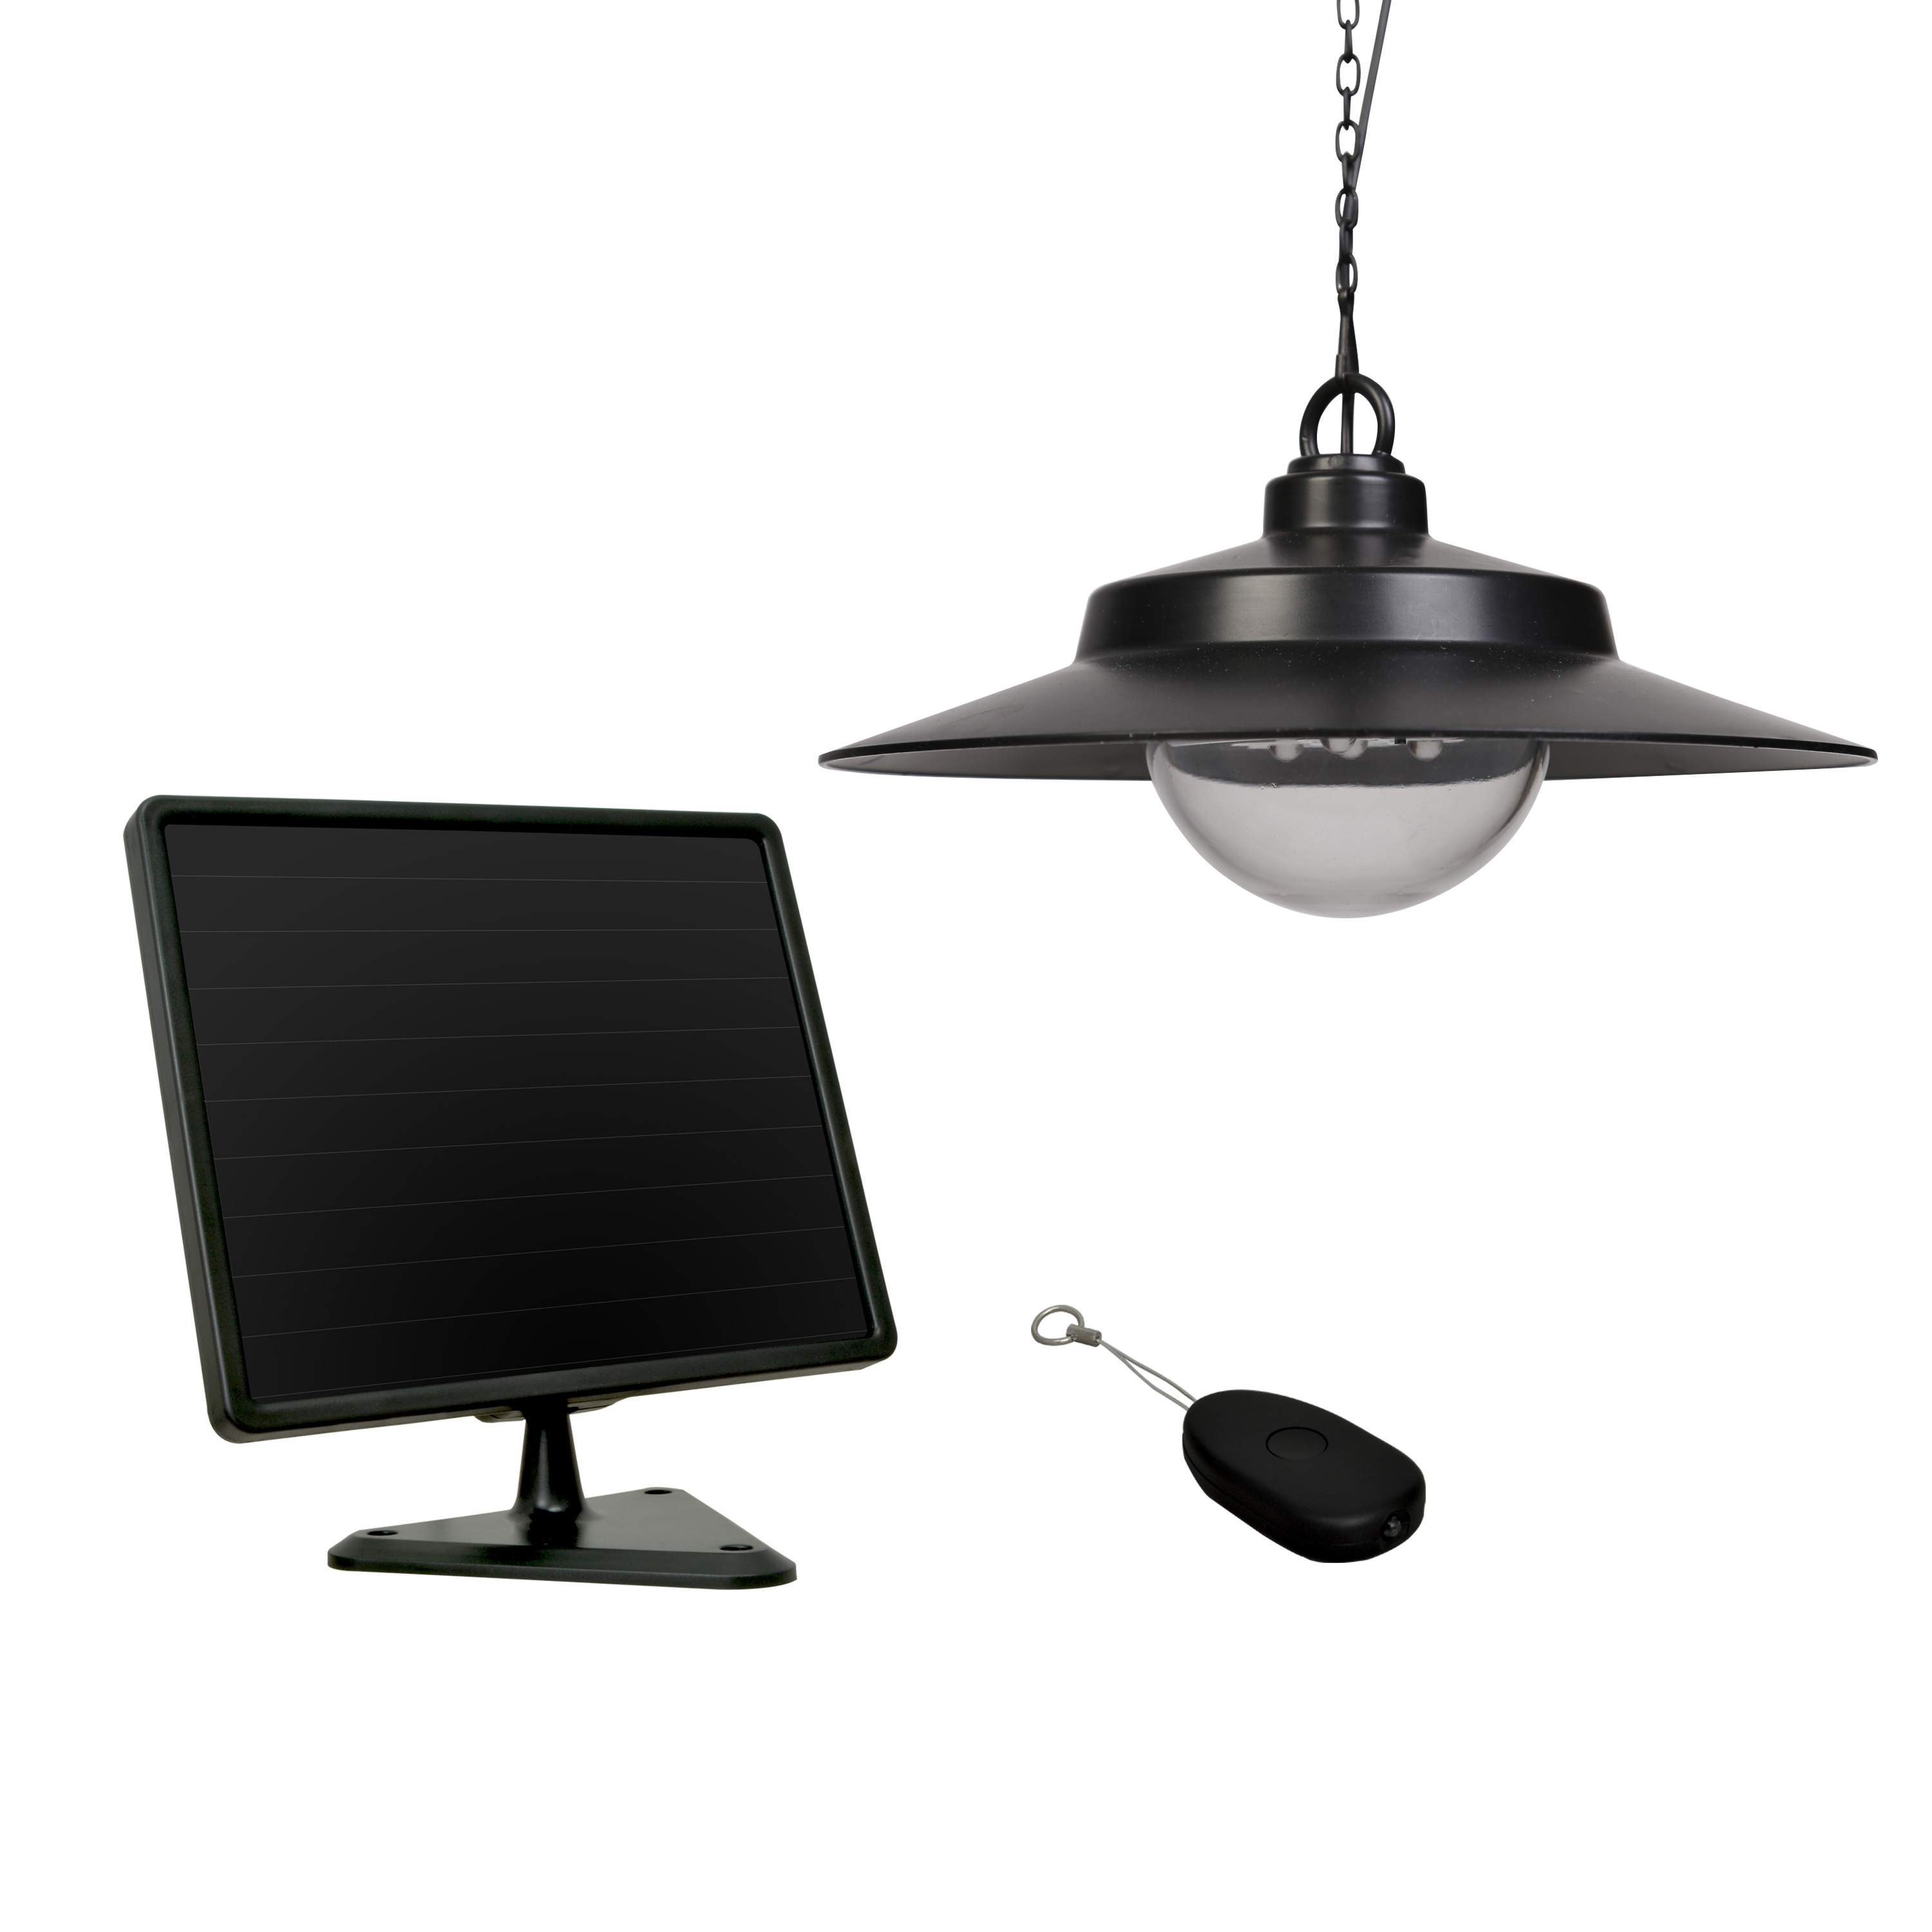 Solar hanging light with remote control sunforce products inc aloadofball Image collections